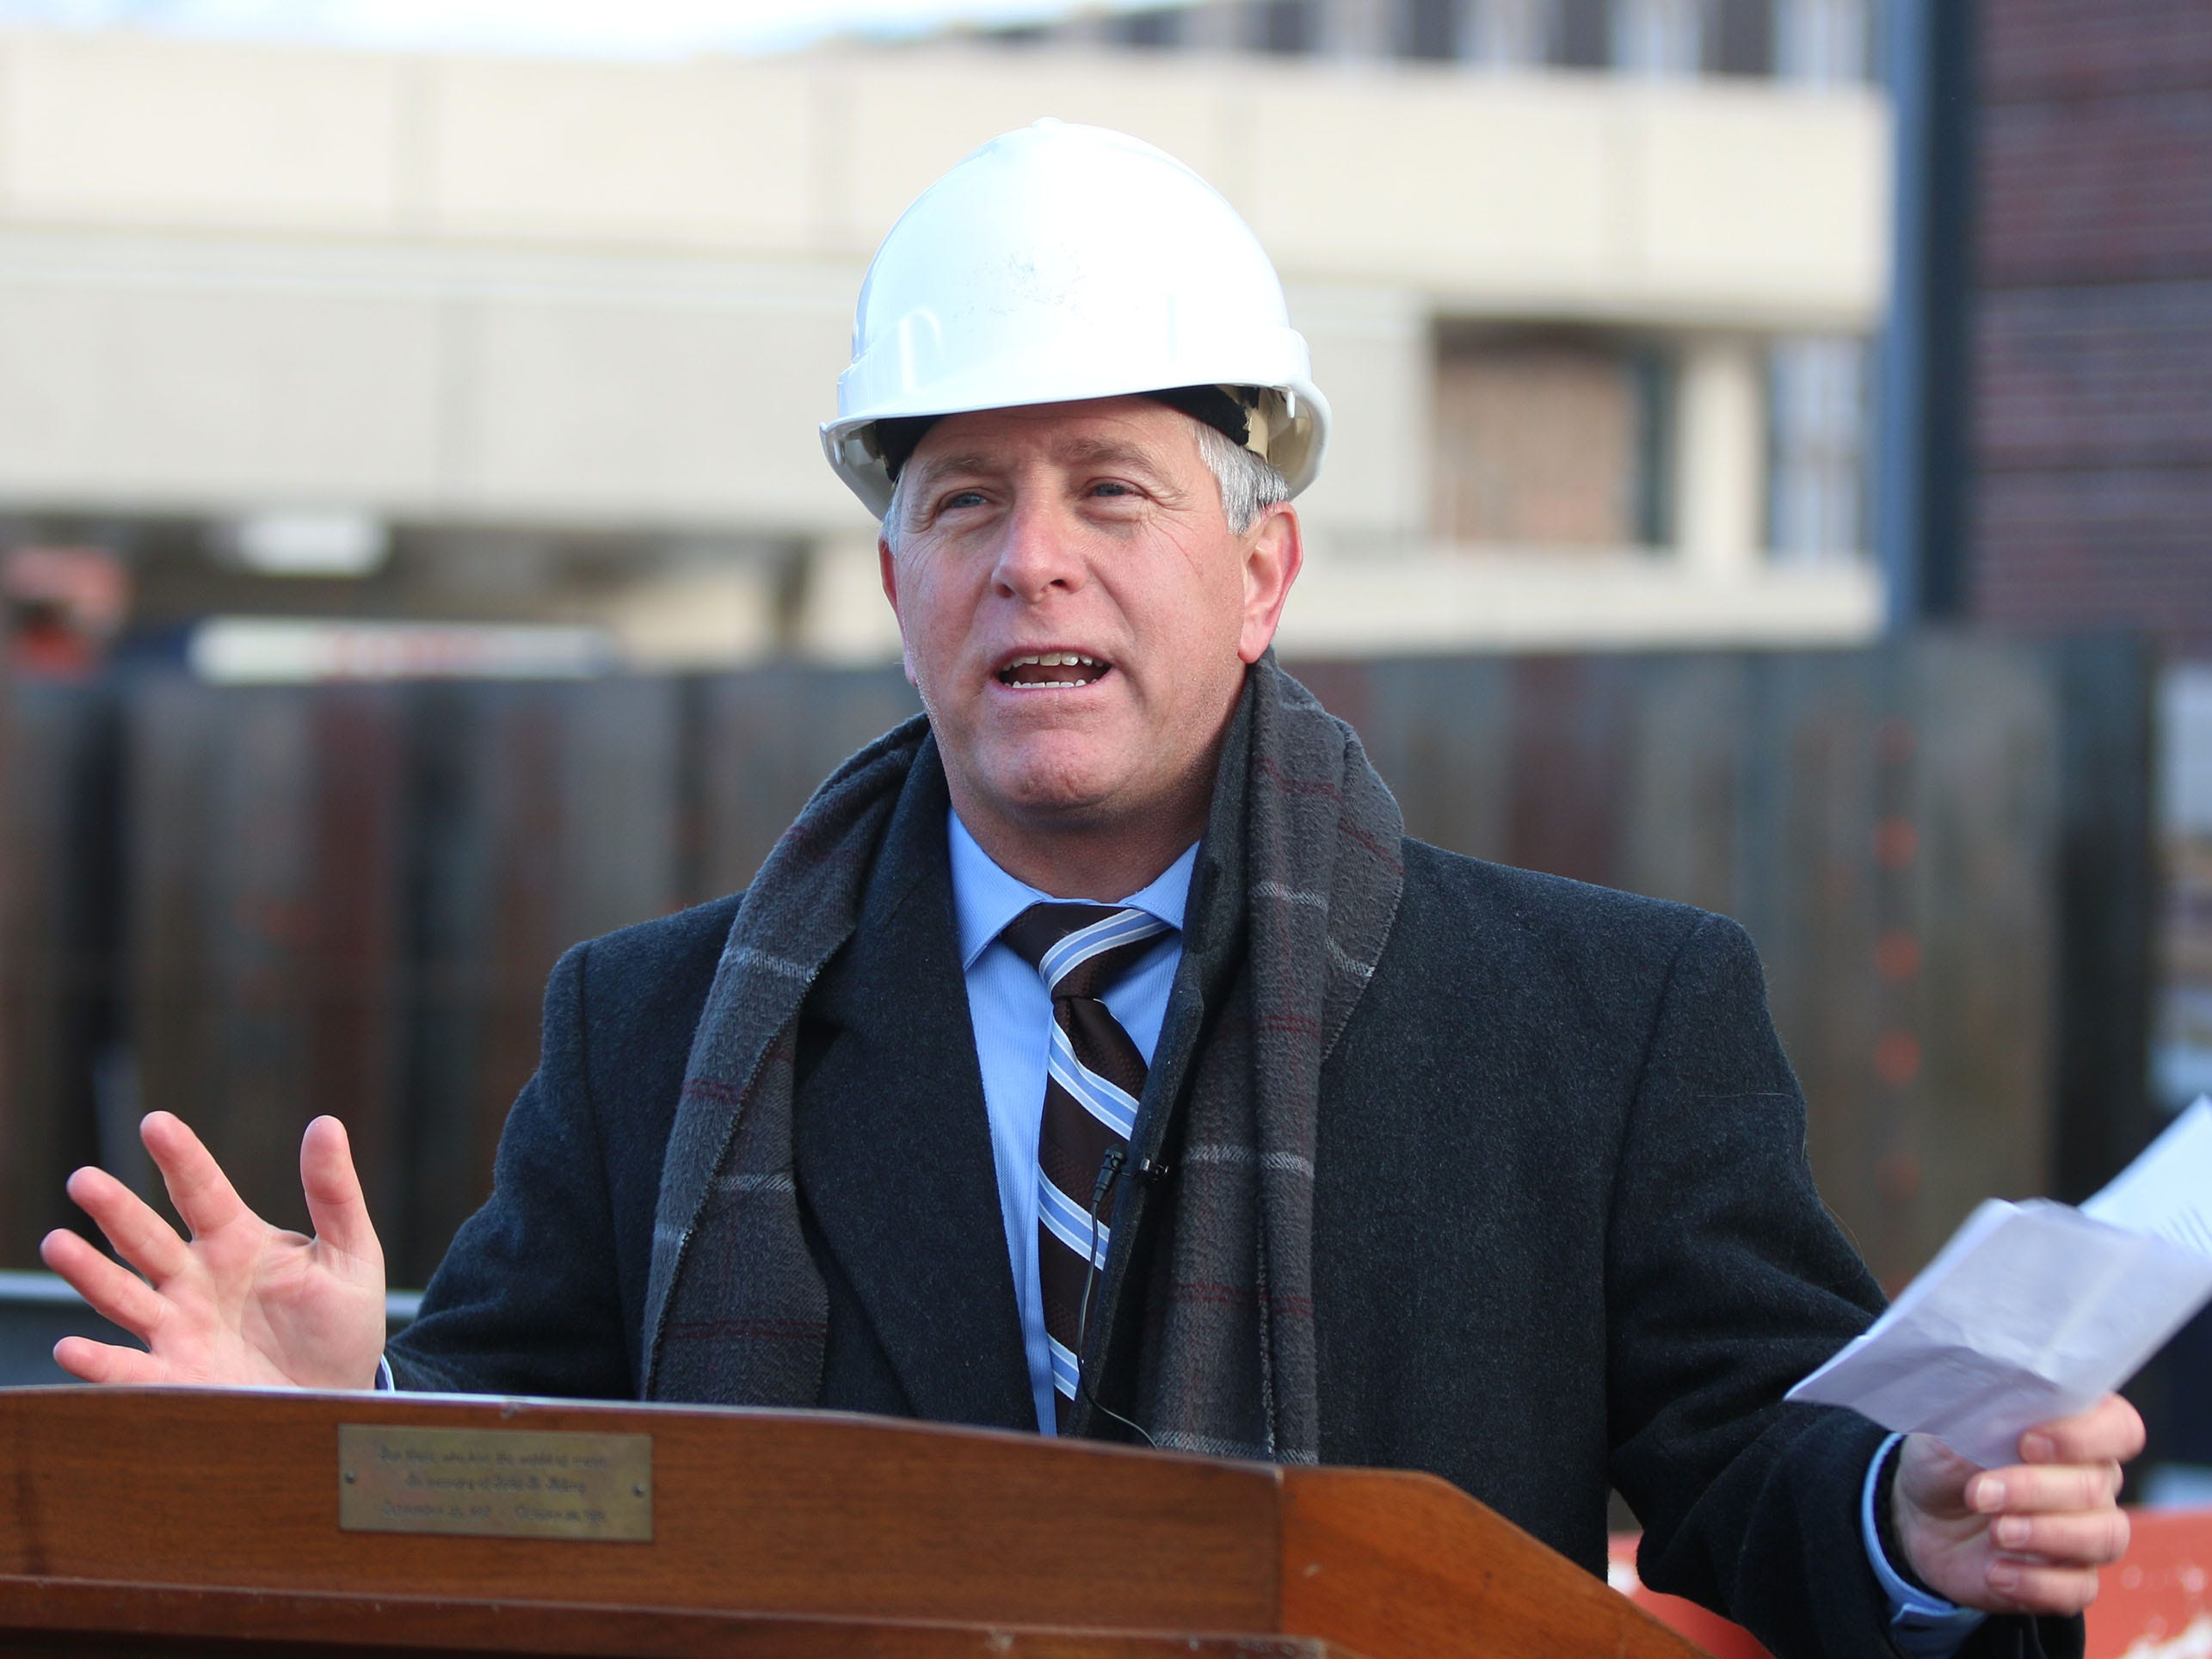 City Director of Public Works David Biebel speaks during a topping off ceremony for the 10. 5 million dollar city hall renovation project, Wednesday, December 5, 2018, in Sheboygan, Wis.